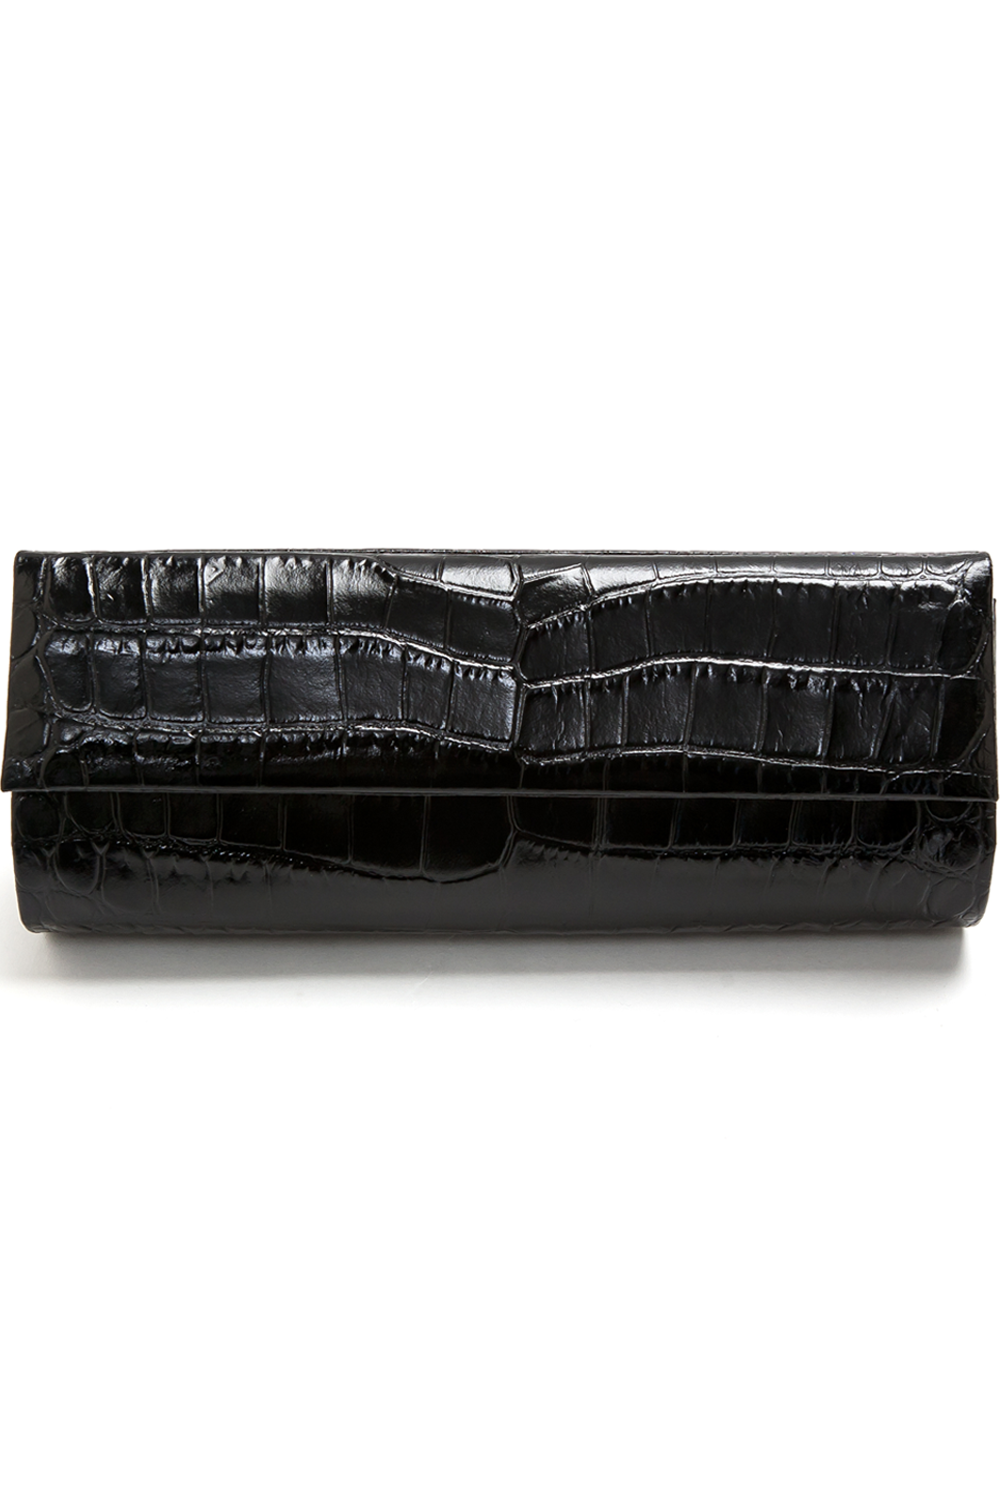 Mel Boteri | 'Audrey' Cocktail Clutch | Black, Croc-Effect Glazed Leather | Front